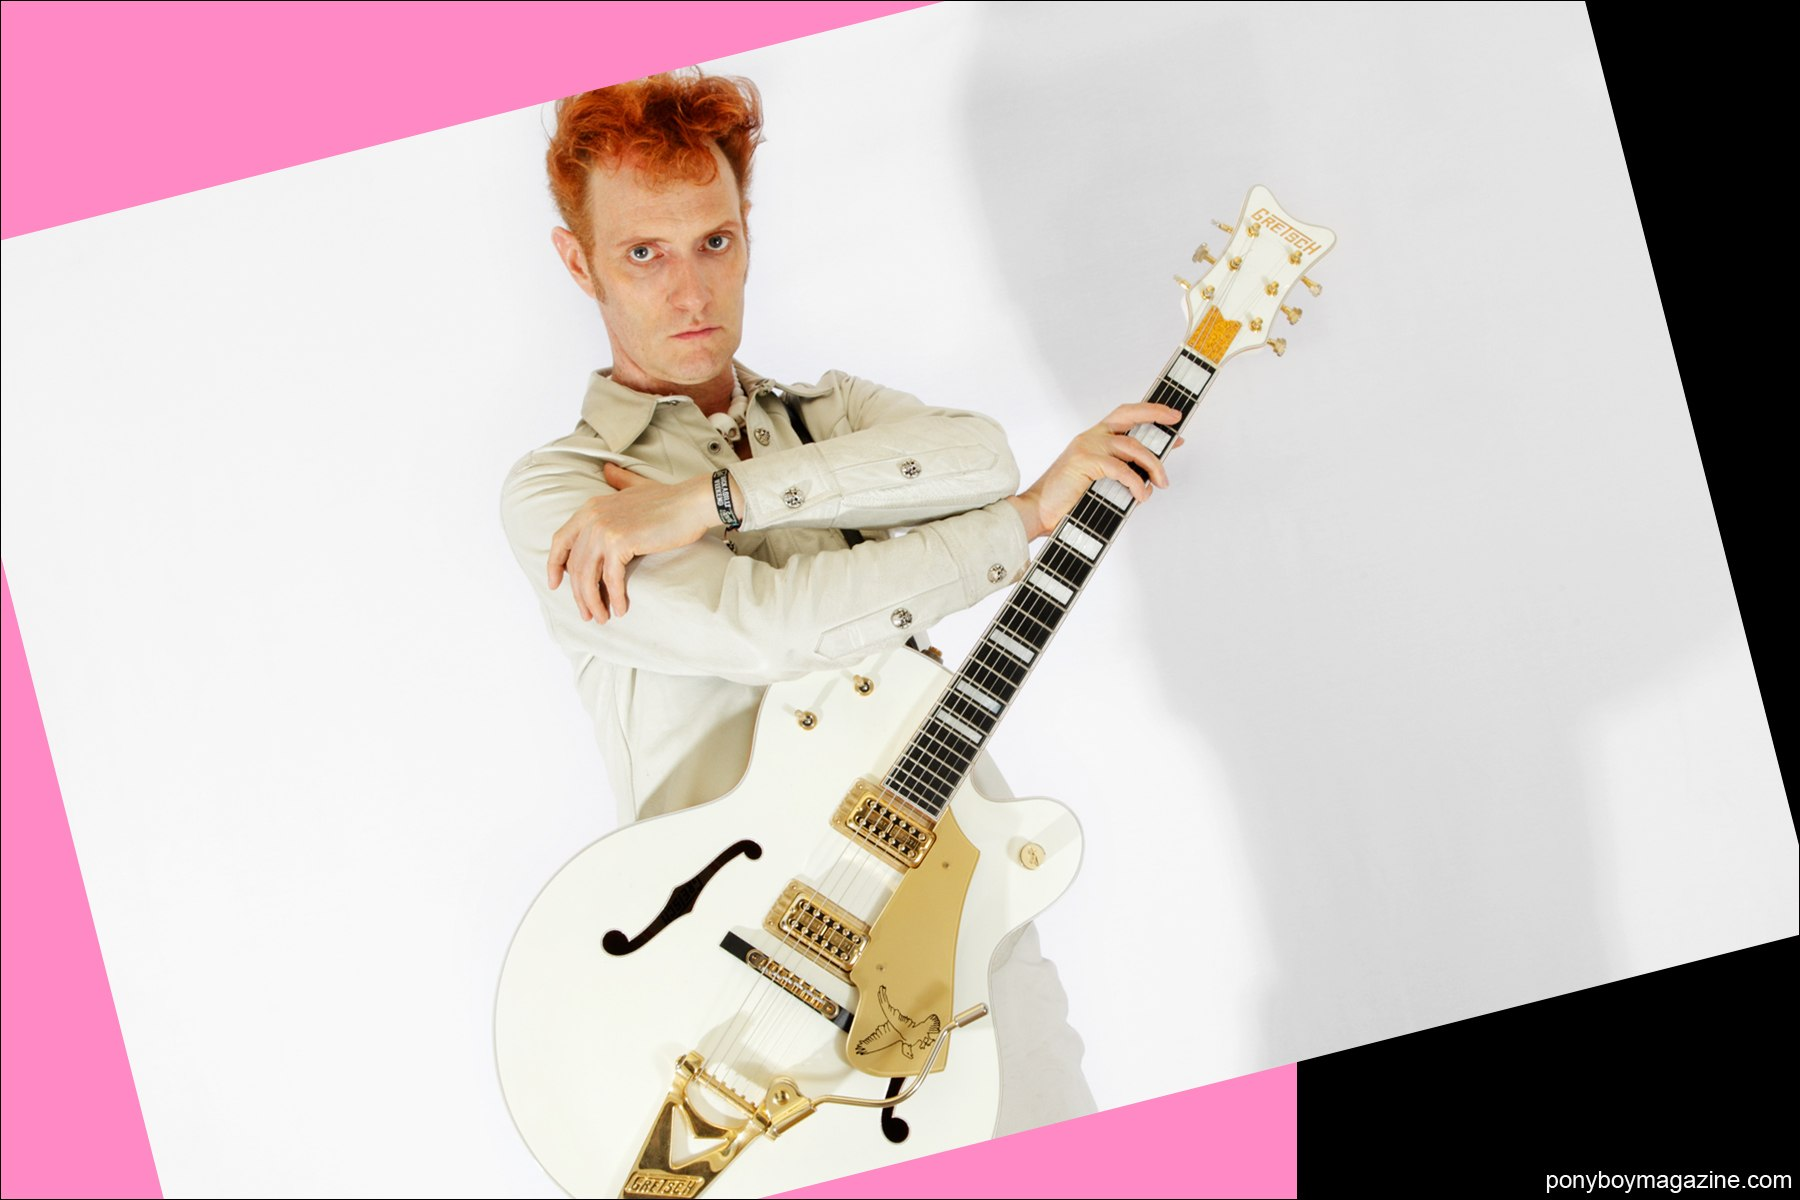 Red haired Polecats frontman Tim Polecat, photographed by Alexander Thompson for Ponyboy Magazine in New York City.